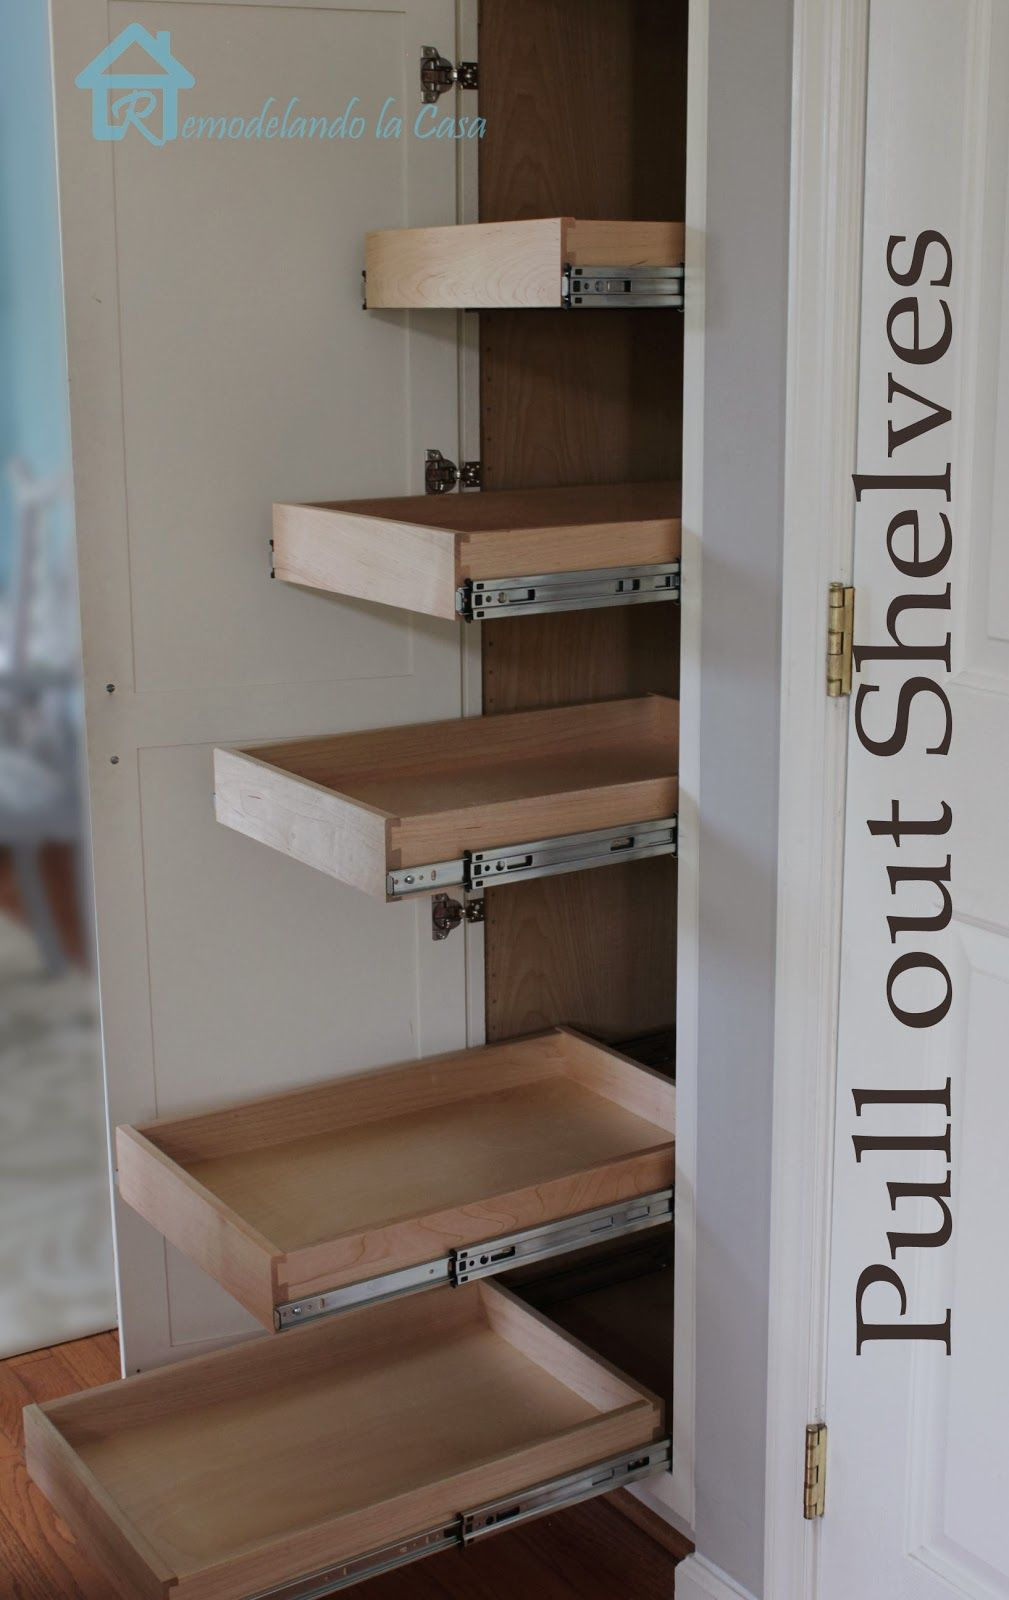 kitchen organization   pull out shelves in pantry kitchen organization   pull out shelves in pantry   shelving      rh   pinterest com